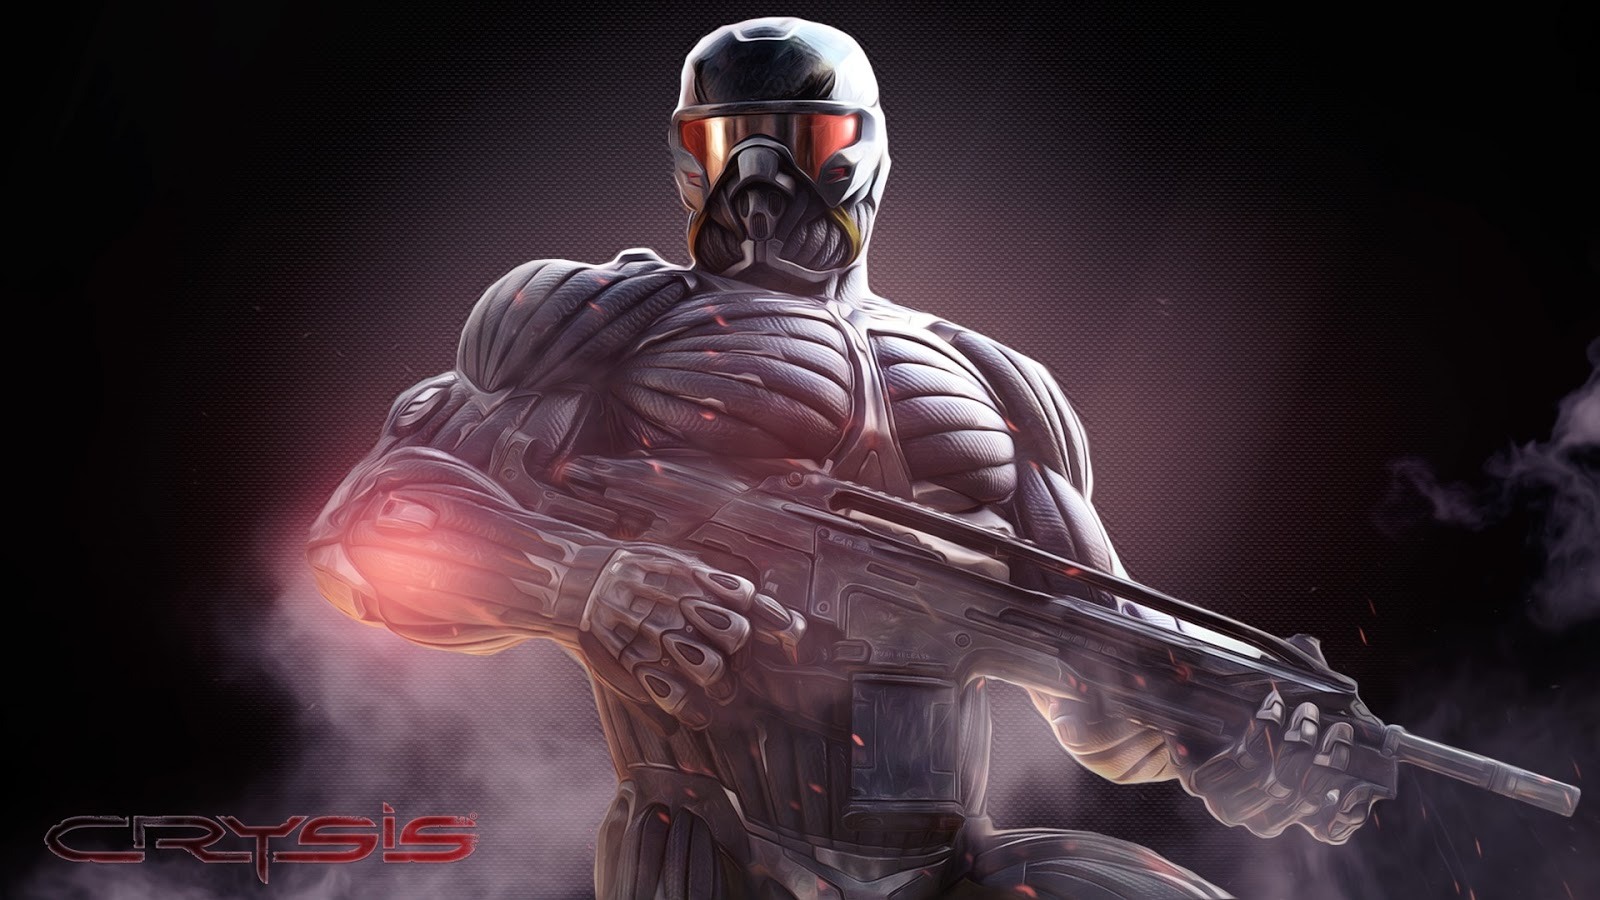 Crysis 3 in Nano Suit Game